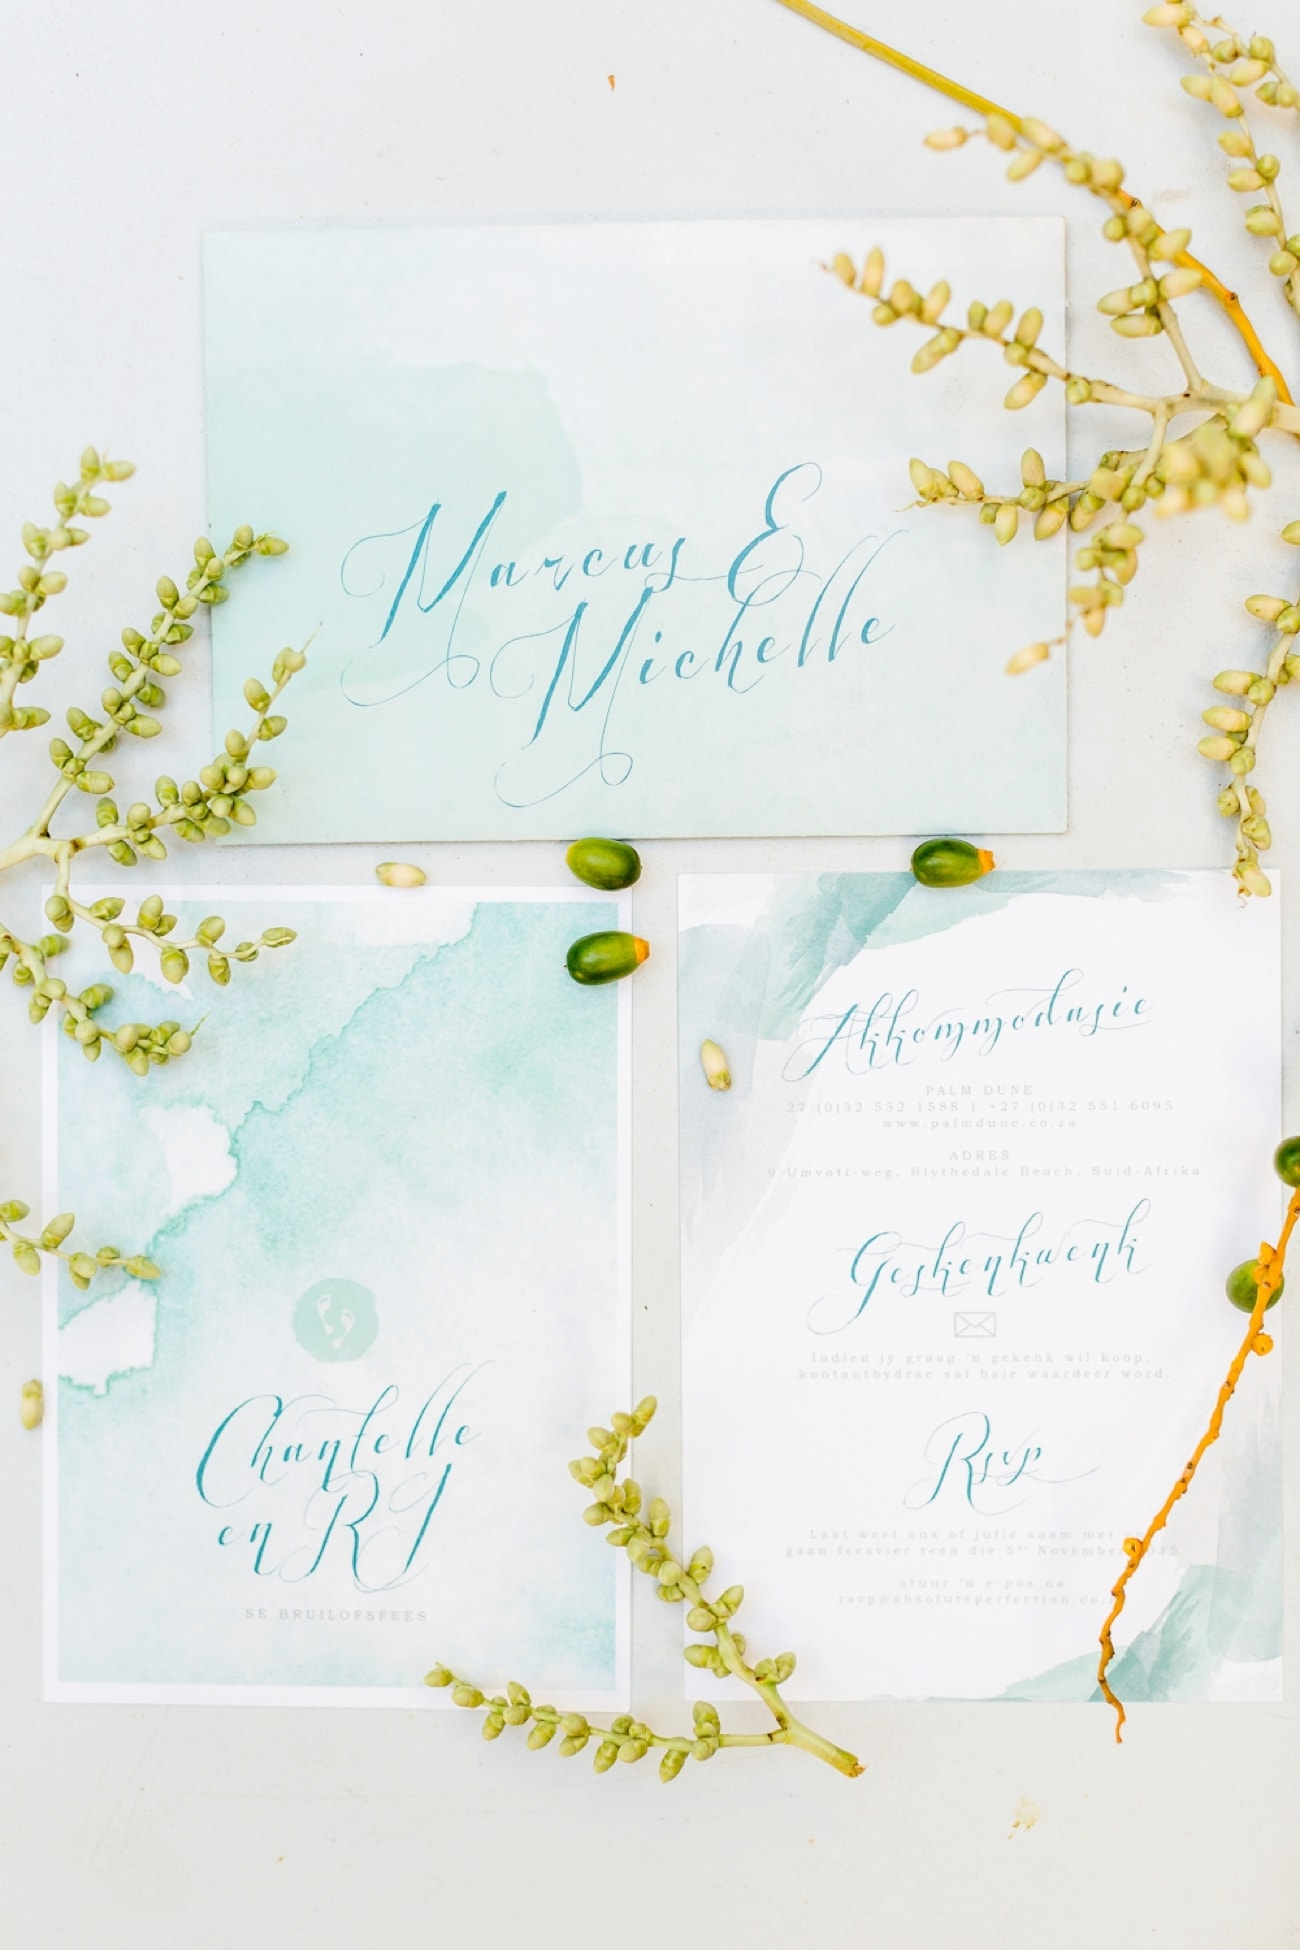 Mint Watercolor Beach Wedding Invitation | Credit: Grace Studios / Absolute Perfection